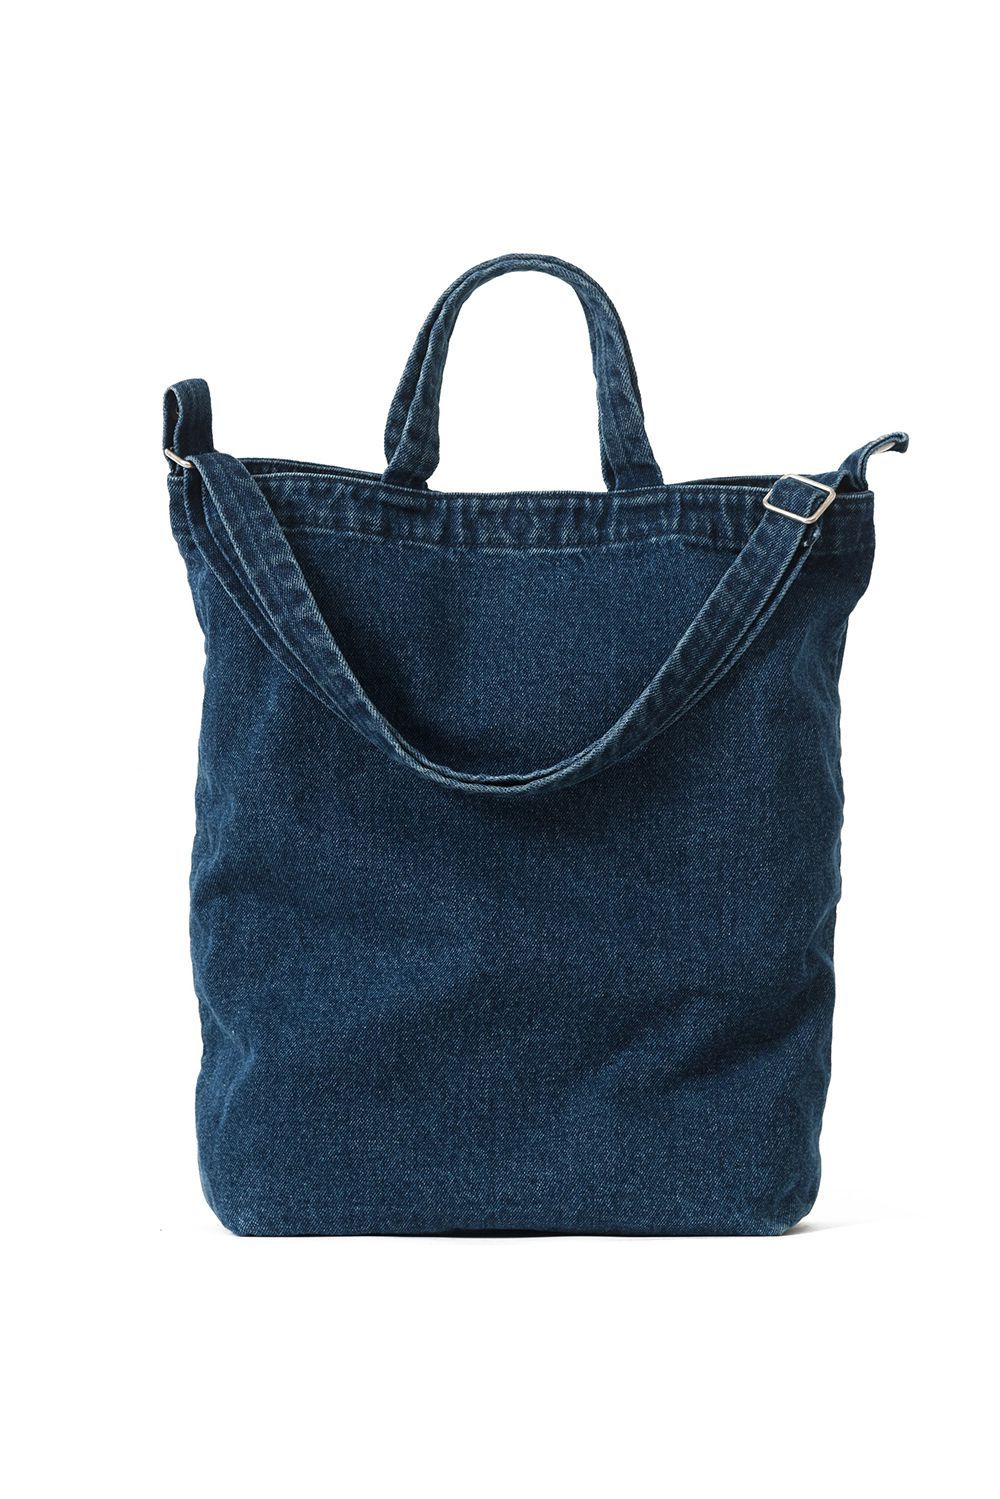 Summer Fridays Denim Baggu $42.00 SHOP IT Switch it up during the summer with this denim everyday tote. It holds a 15-inch Macbook and has plenty of pockets to stash loose change and hair ties.